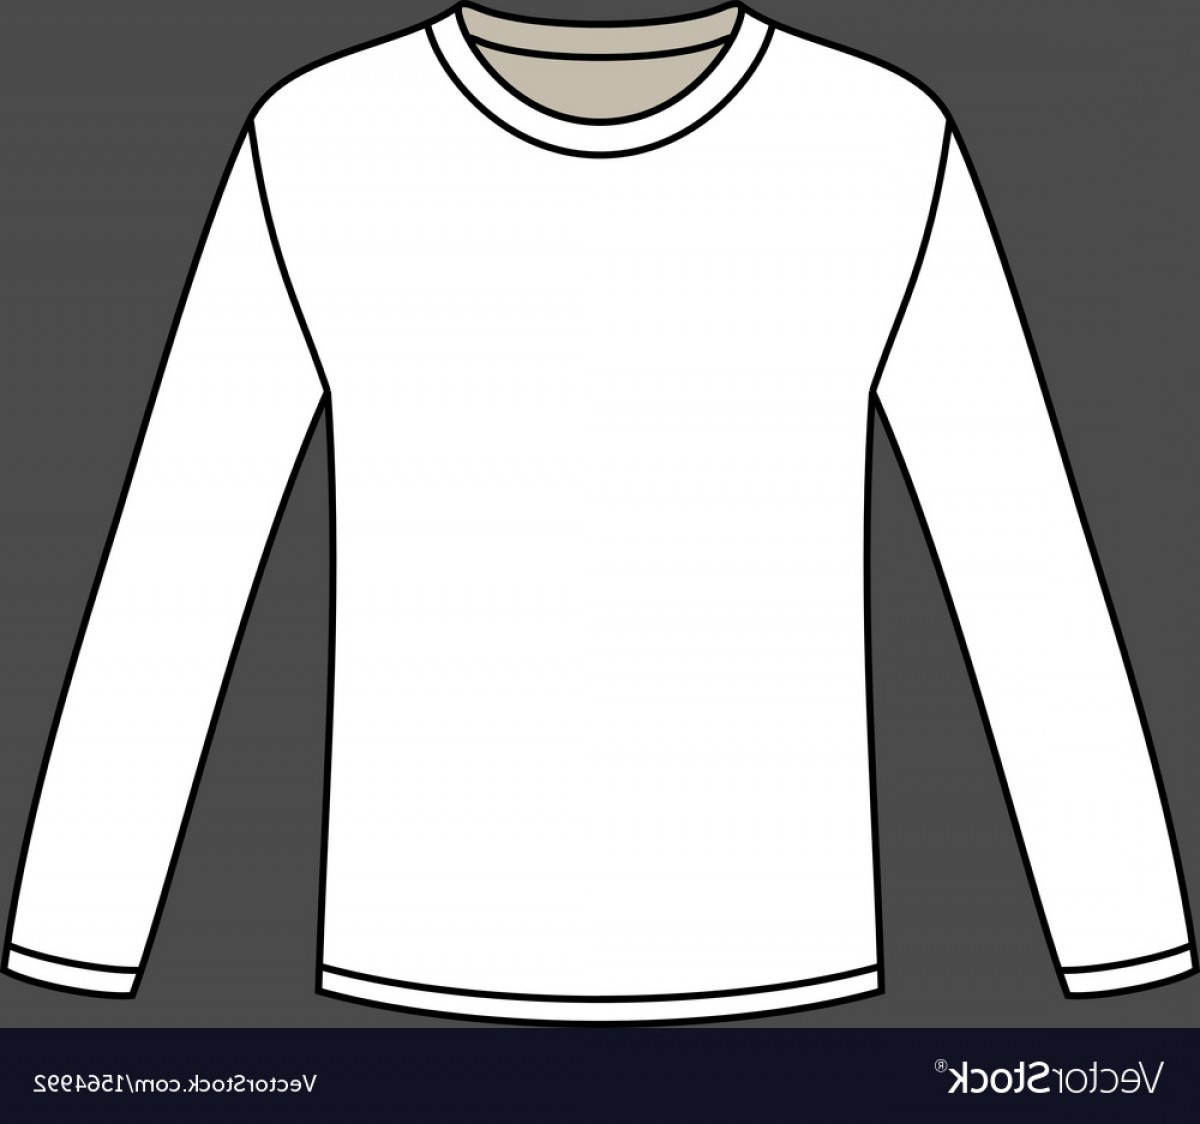 Long Sleeve Jersey Vector Template: Blank Long Sleeved T Shirt Template Vector